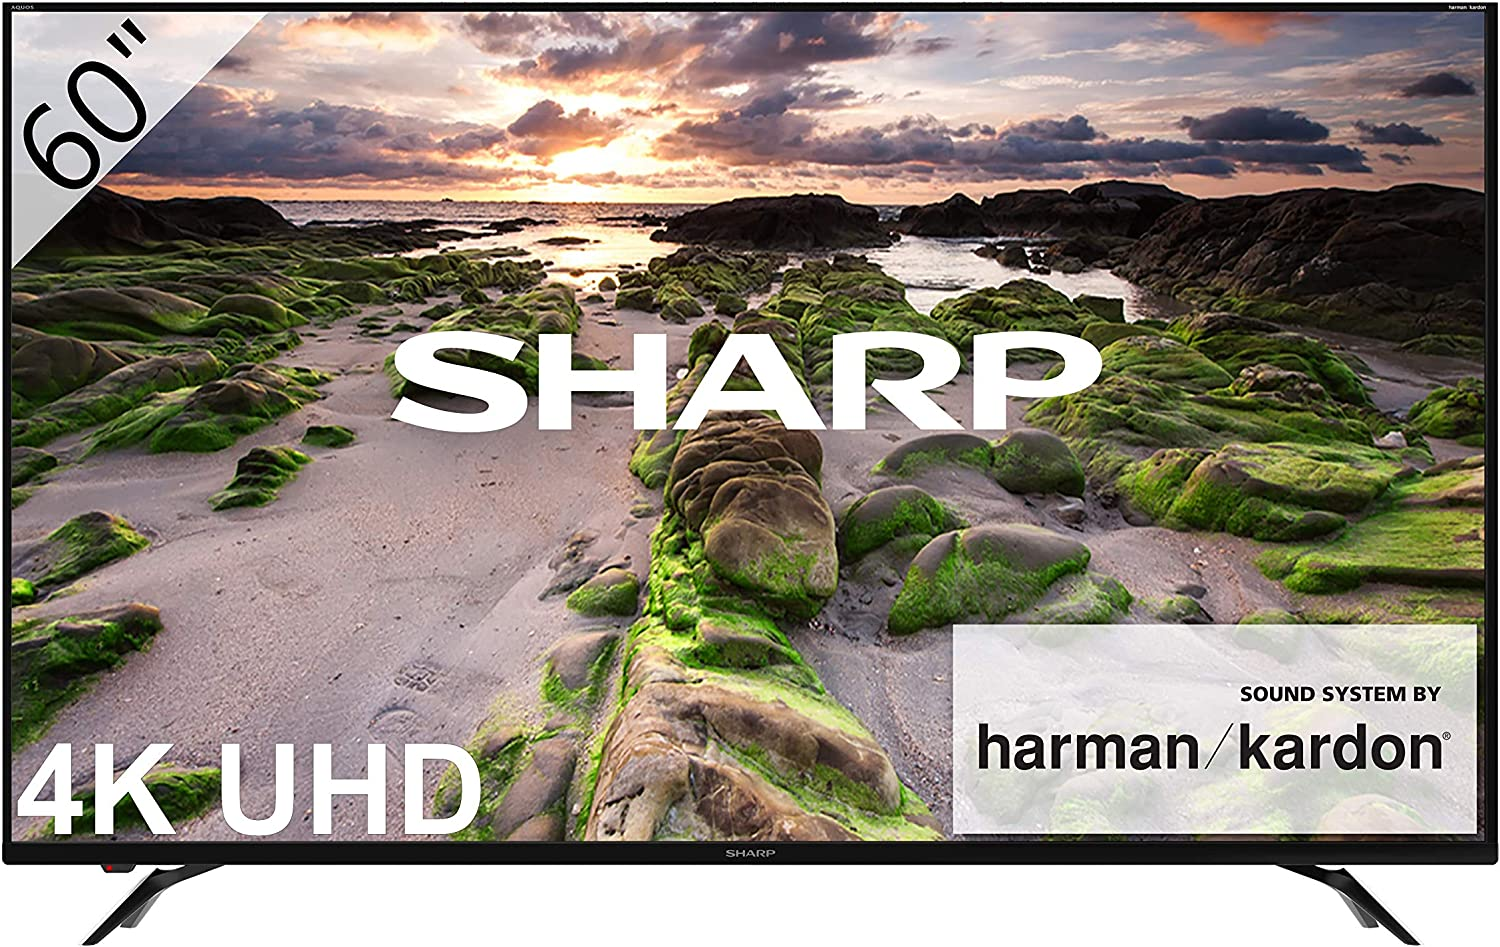 Sharp 4k Ultra Hd Smart E Led Tv Amazon Co Uk Electronics